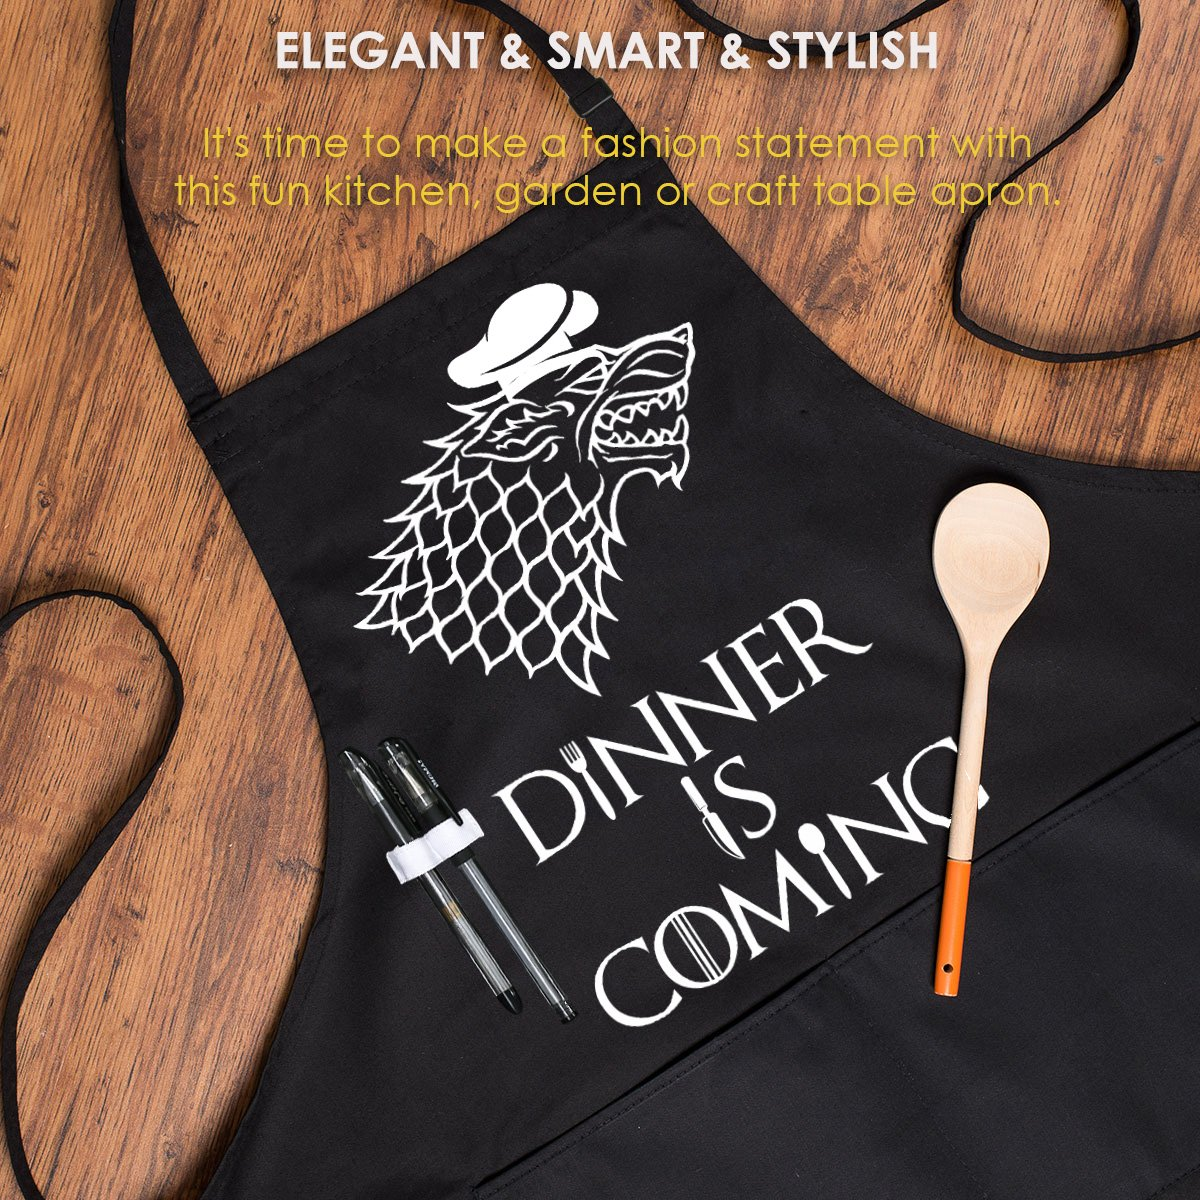 Grill Aprons Kitchen Chef Bib - Famgem Dinner is Coming Professional for BBQ, Baking, Cooking for Men Women / 100% Cotton, Adjustable 3 Pockets, Black by Famgem (Image #5)